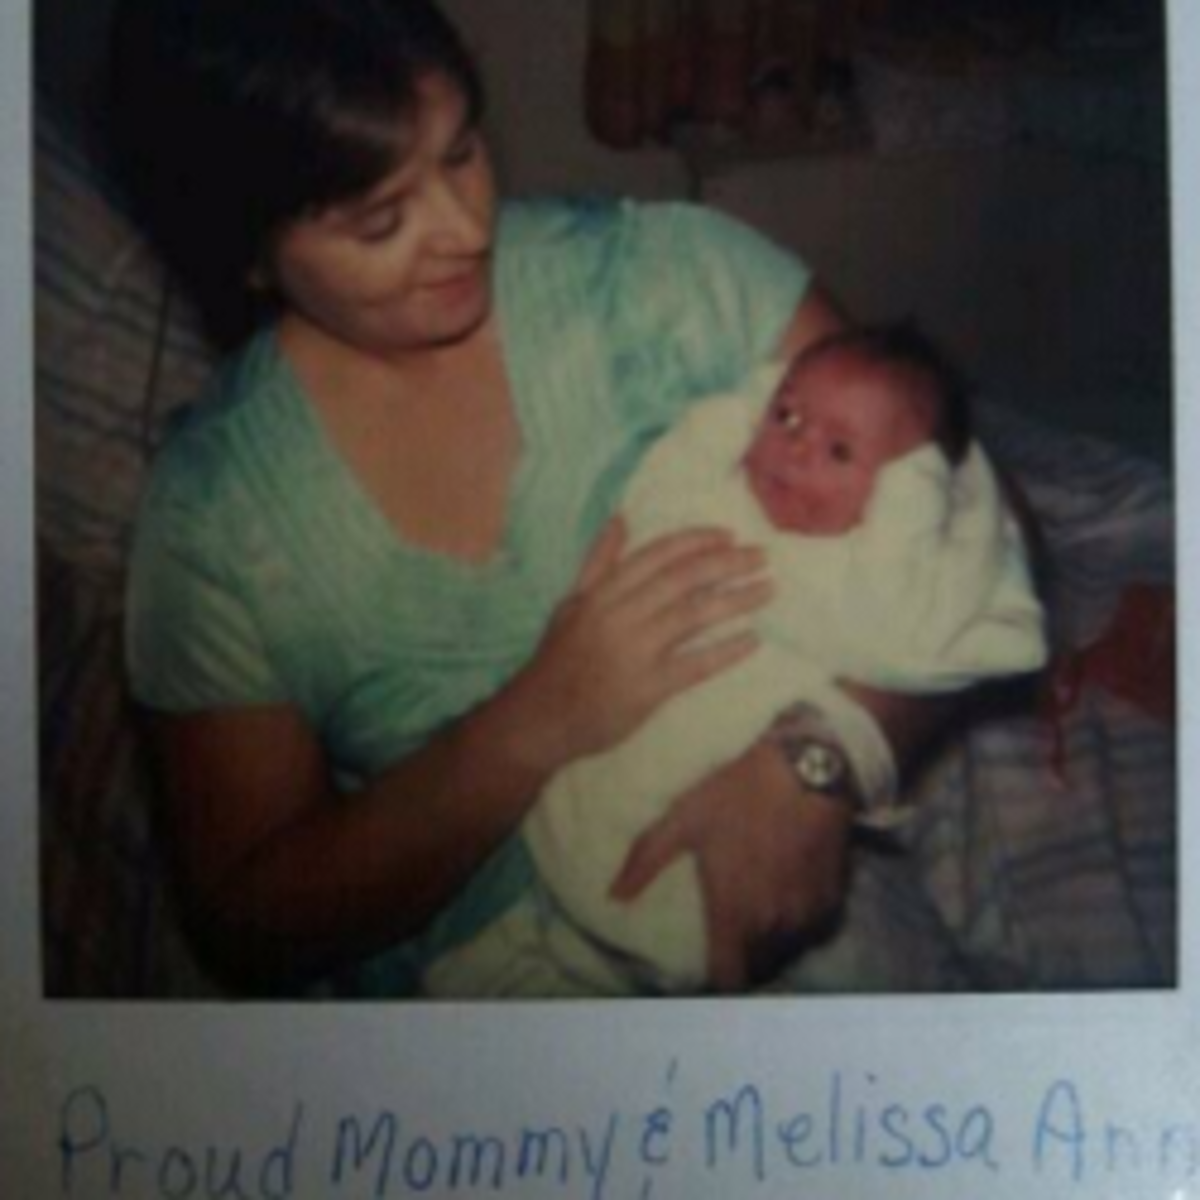 Image of Mommy and Melissa